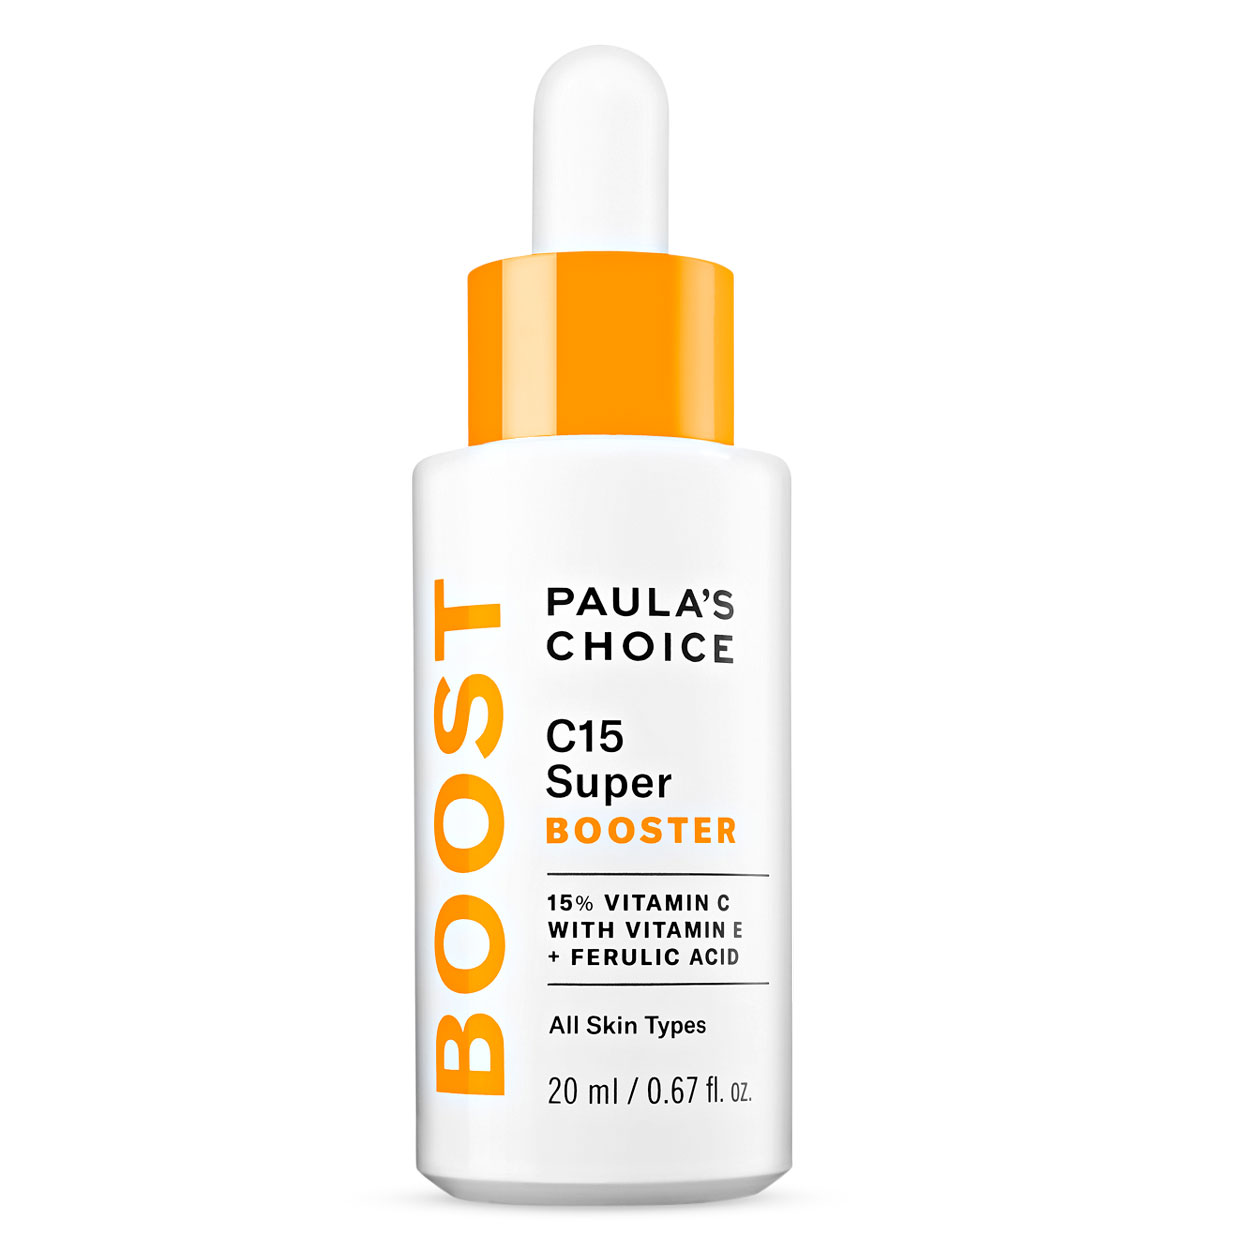 Paula's Choice Vitamin C serum